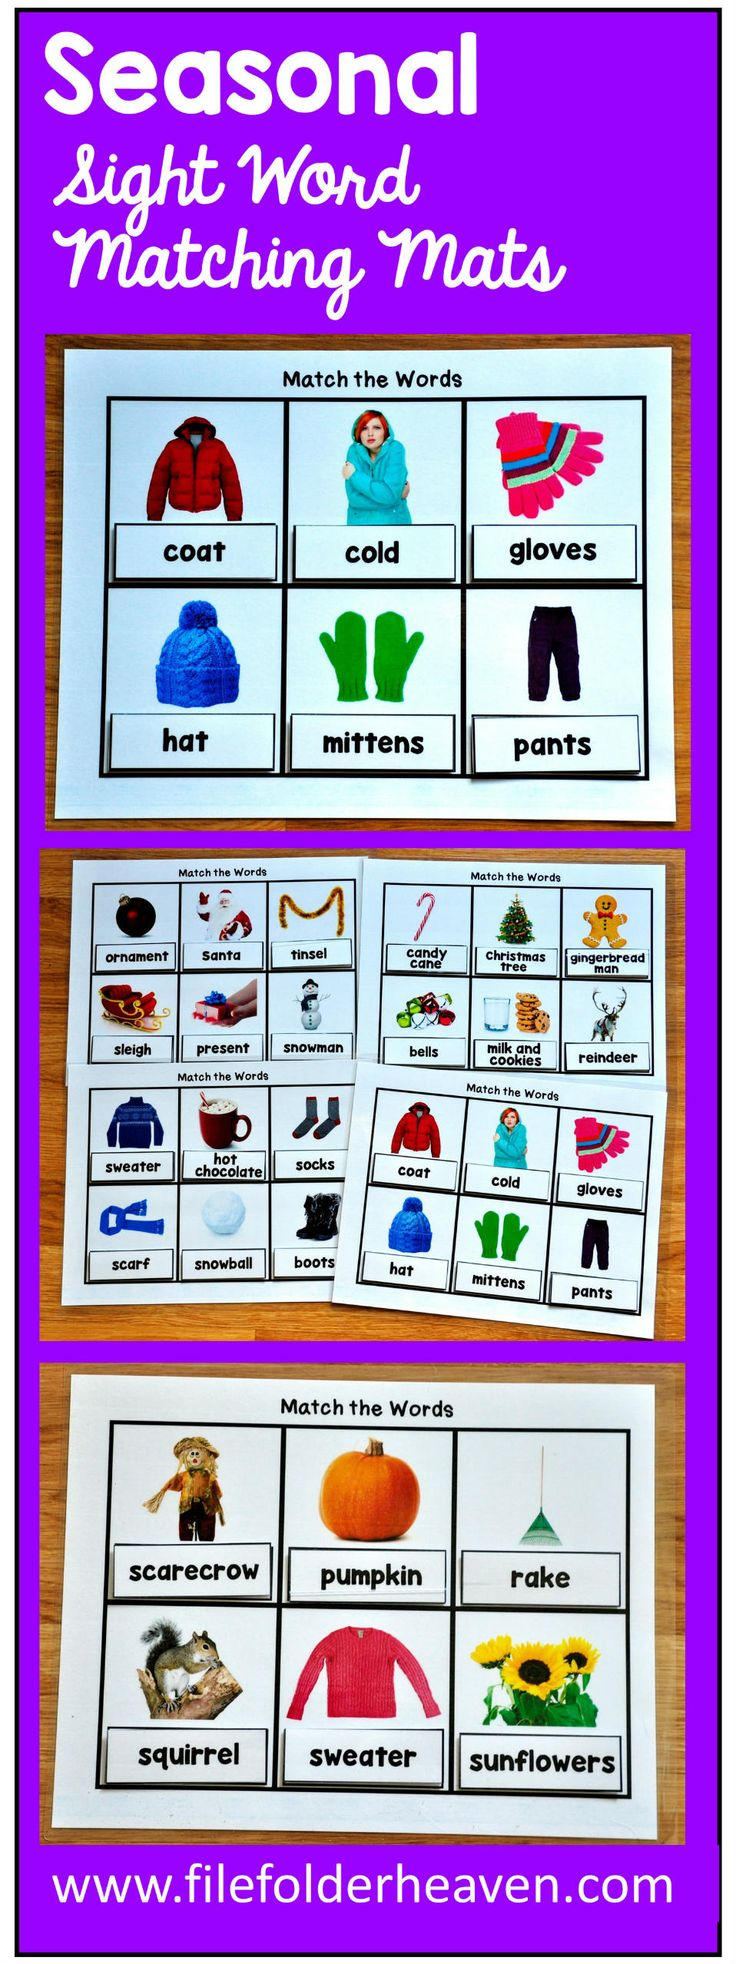 These Seasonal Vocabulary Words Matching Mats will be a growing bundle! This set focuses on seasonal words and provides a versatile way for students to practice with functional sight words.  This set currently includes 12 different matching mats that focus on 5 different seasonal themes.  All matching mats include real photos. This bundle will grow!